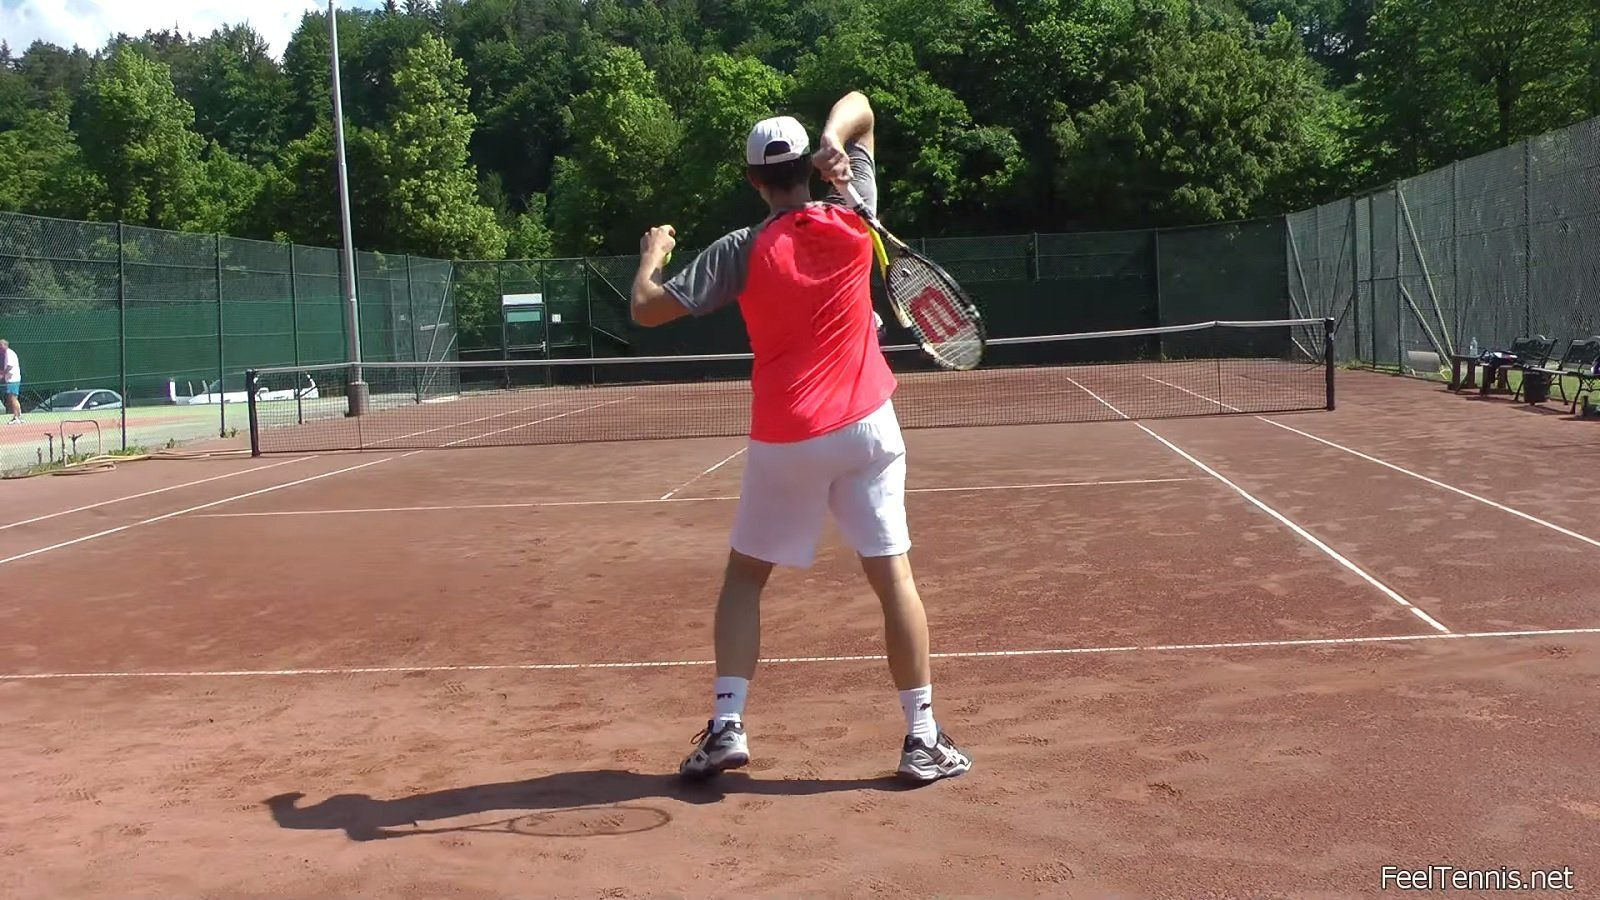 Comparison of forehand groundstrokes